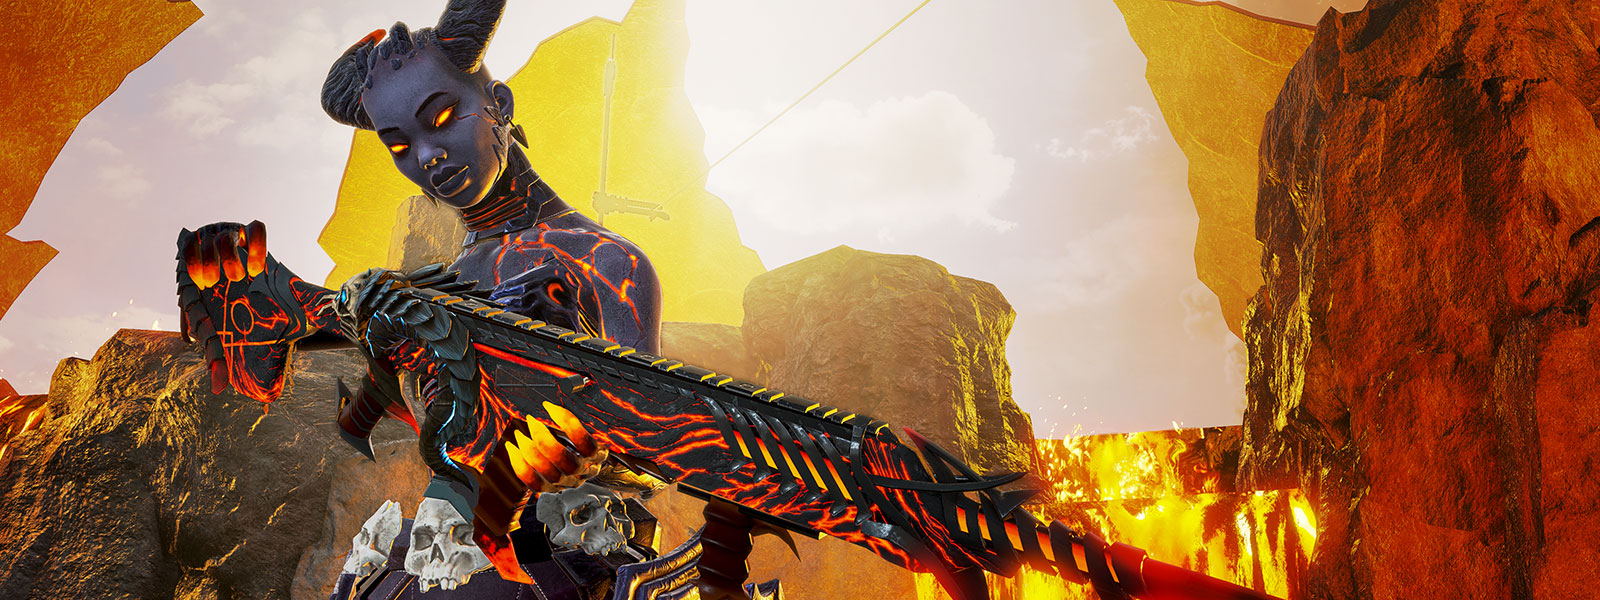 A woman made of lava holds a long glowing rifle, rock and lava background